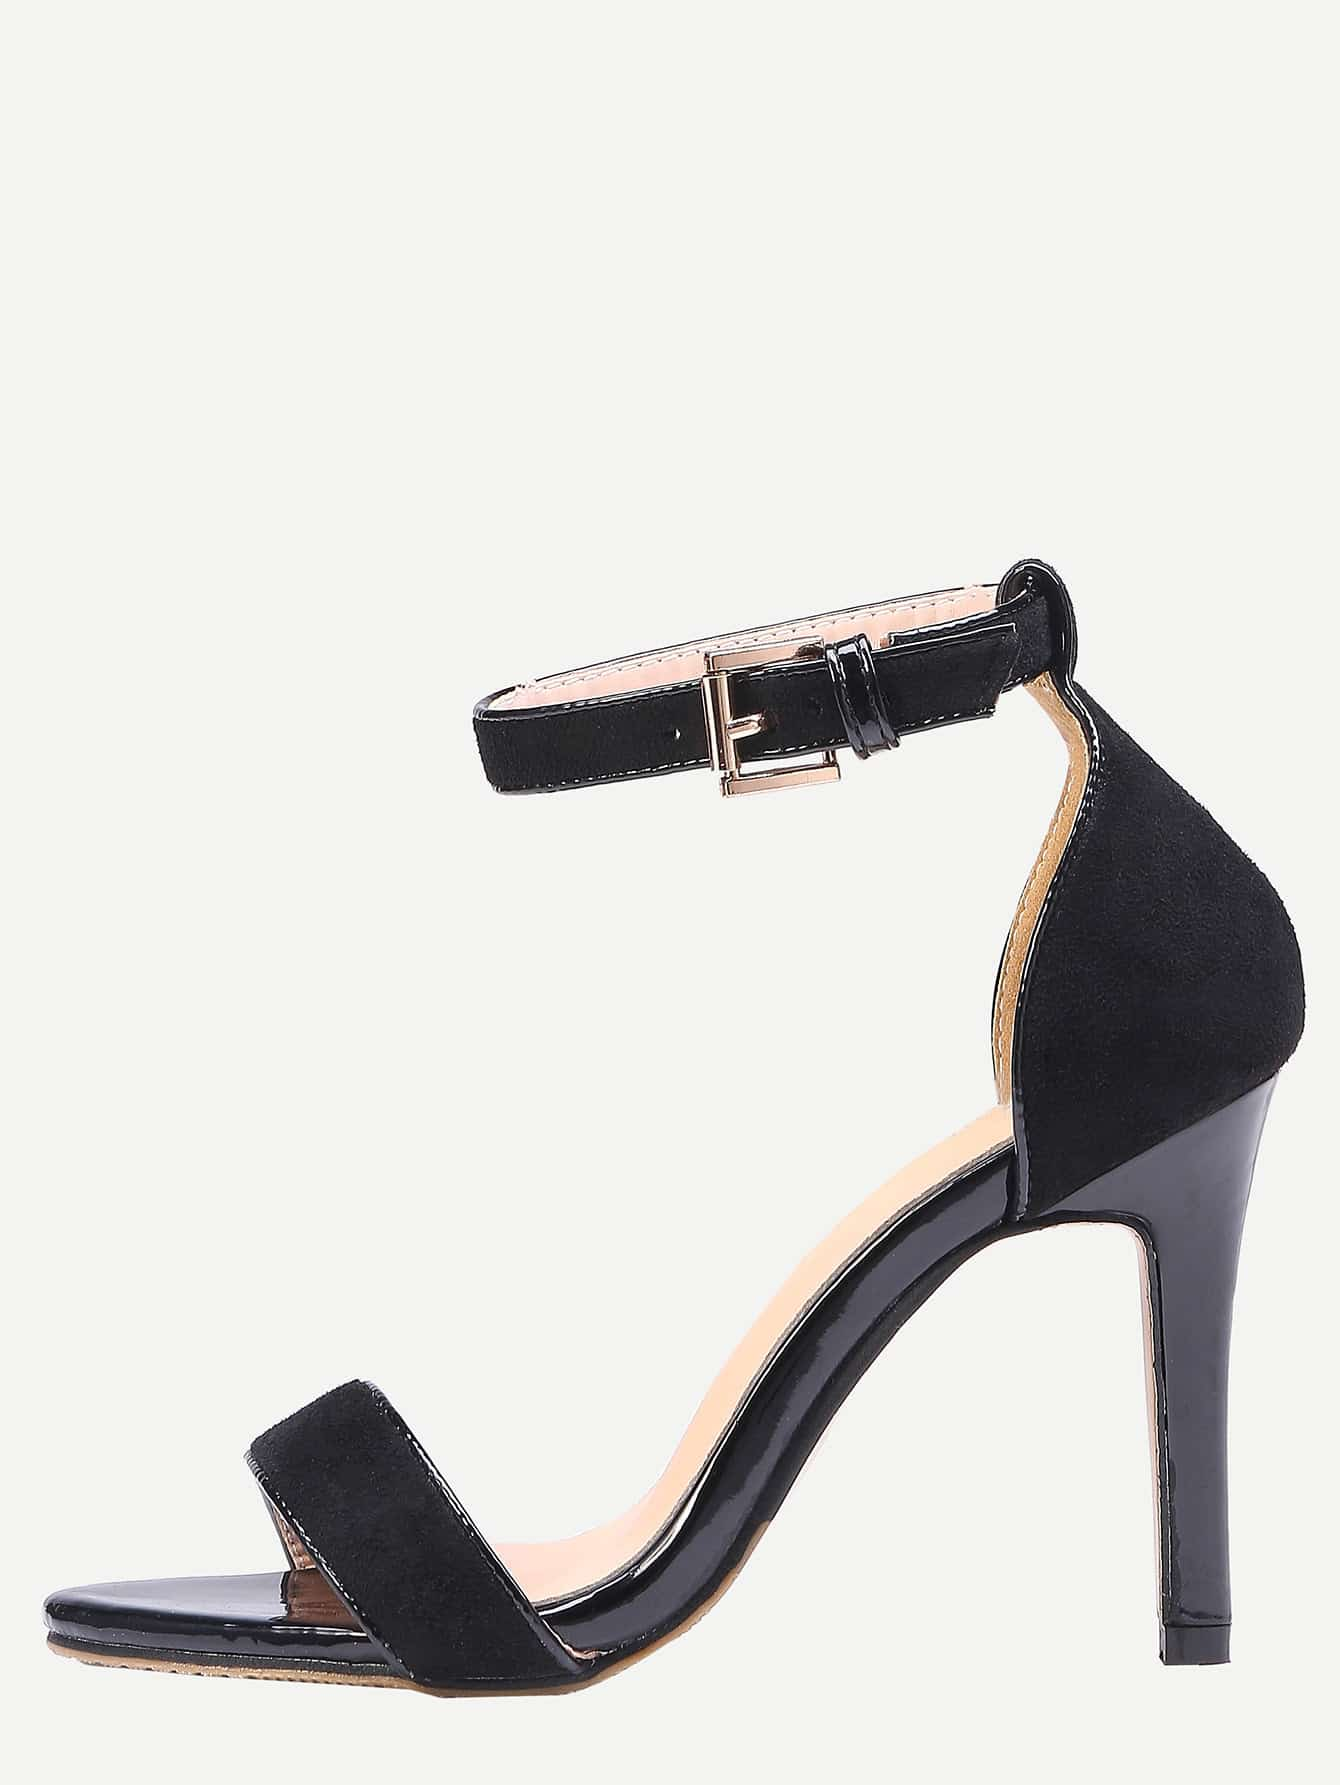 Black Ankle Strap Stiletto Sandals RSHO15121105